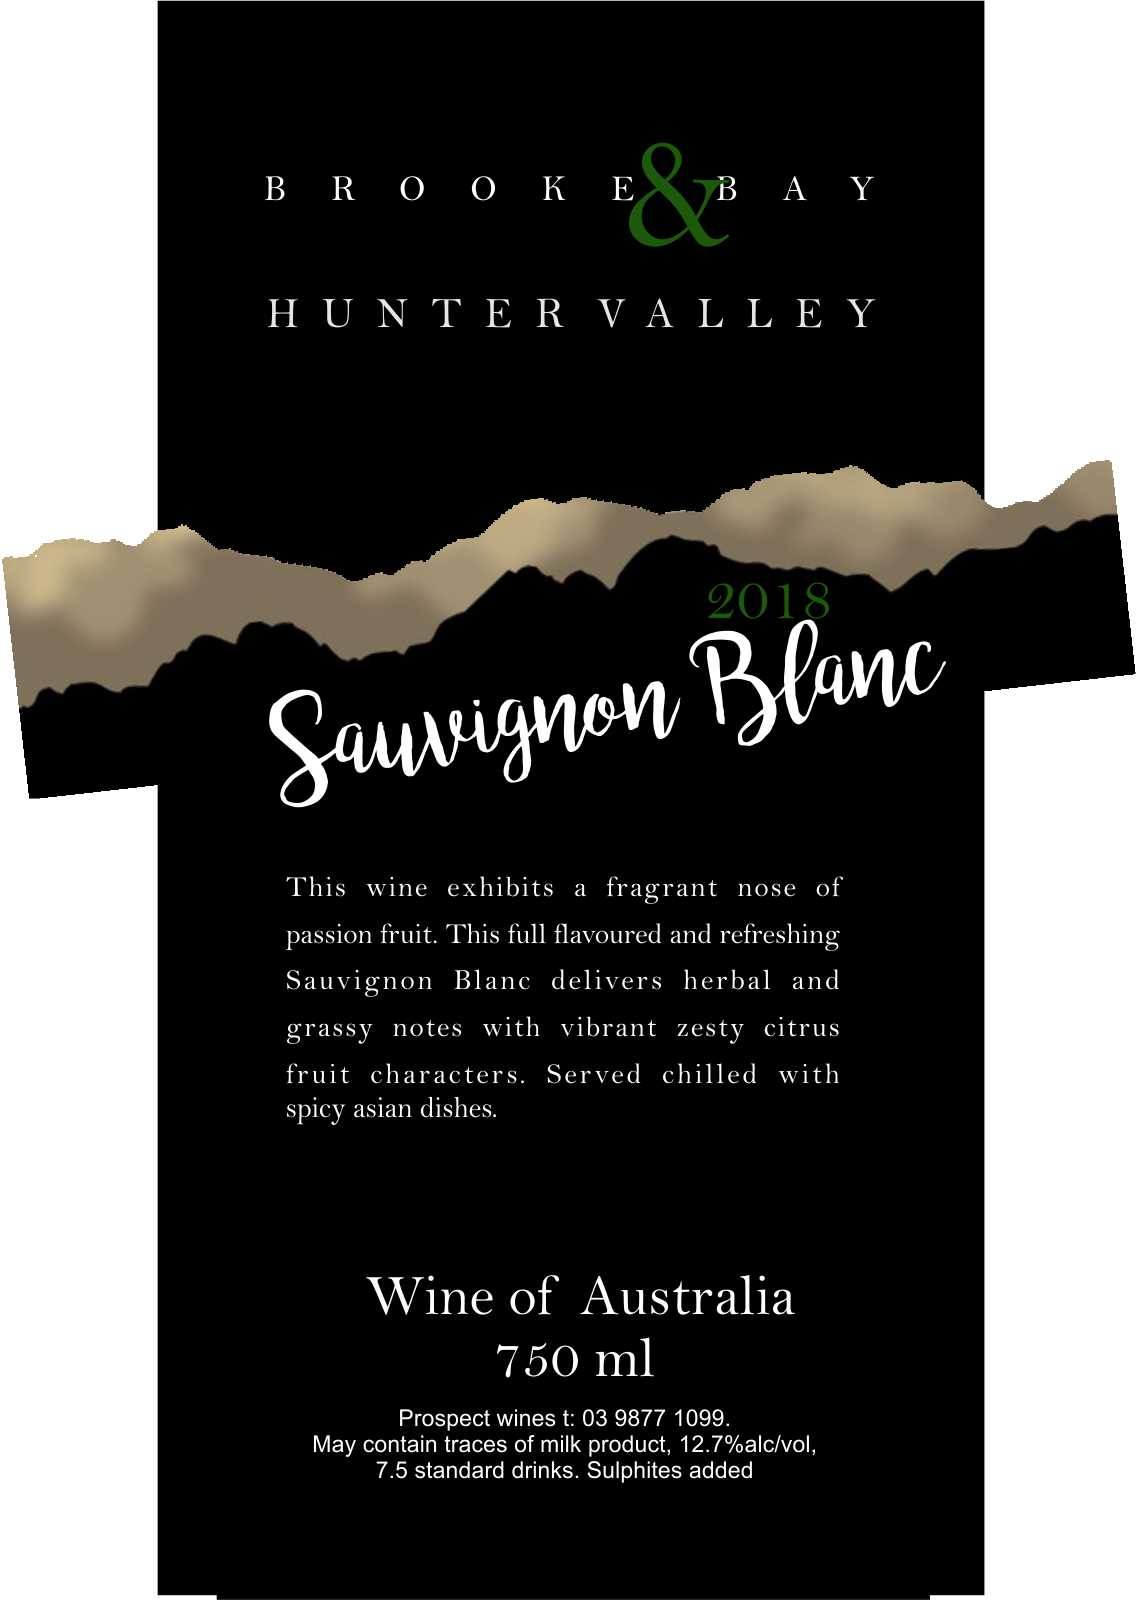 HUNTER VALLEY SAUVIGNON BLANC